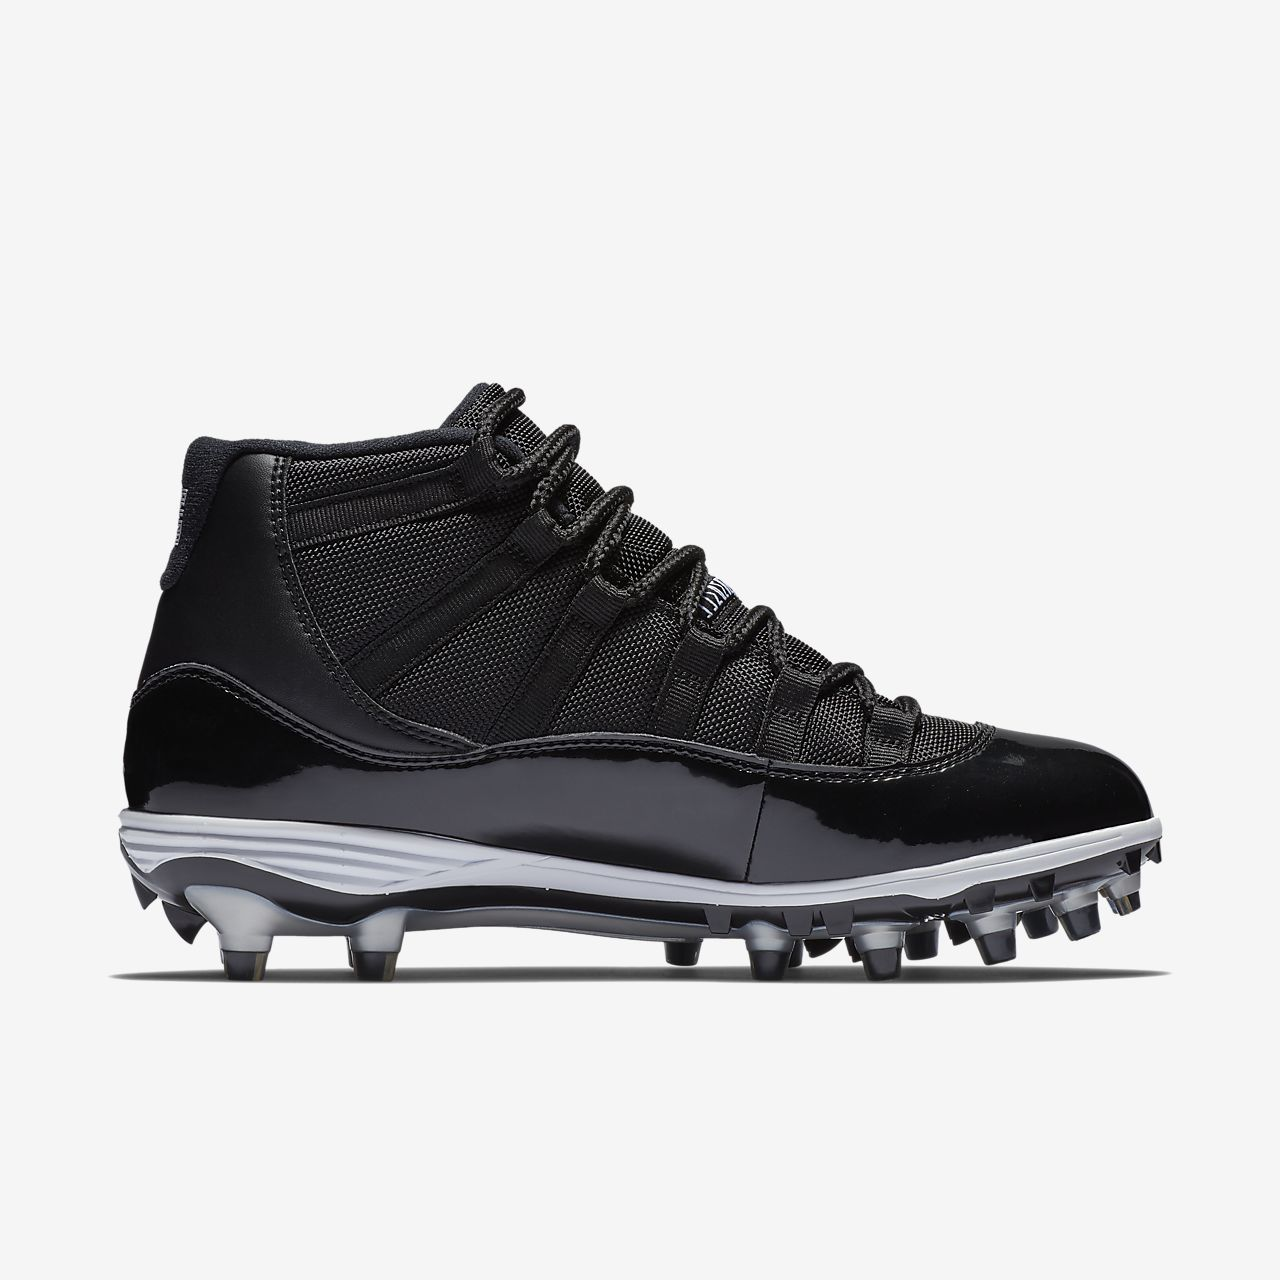 1e4d1c16191a14 Jordan XI Retro TD Men s Football Cleat. Nike.com